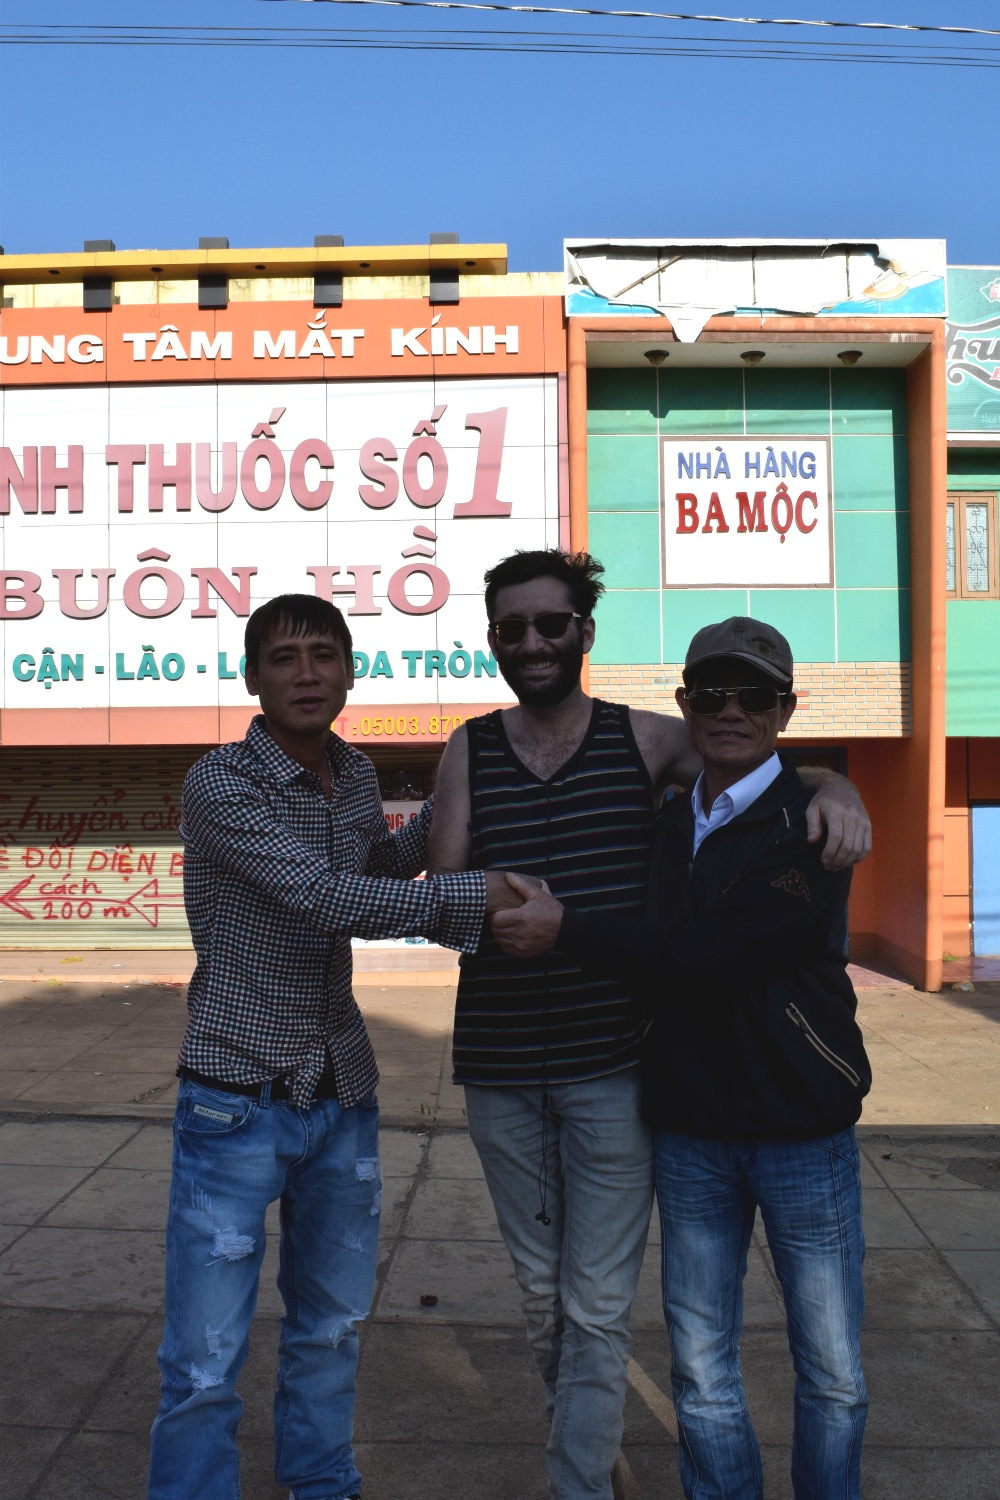 More friends somewhere between Nha Trang and Hoi An